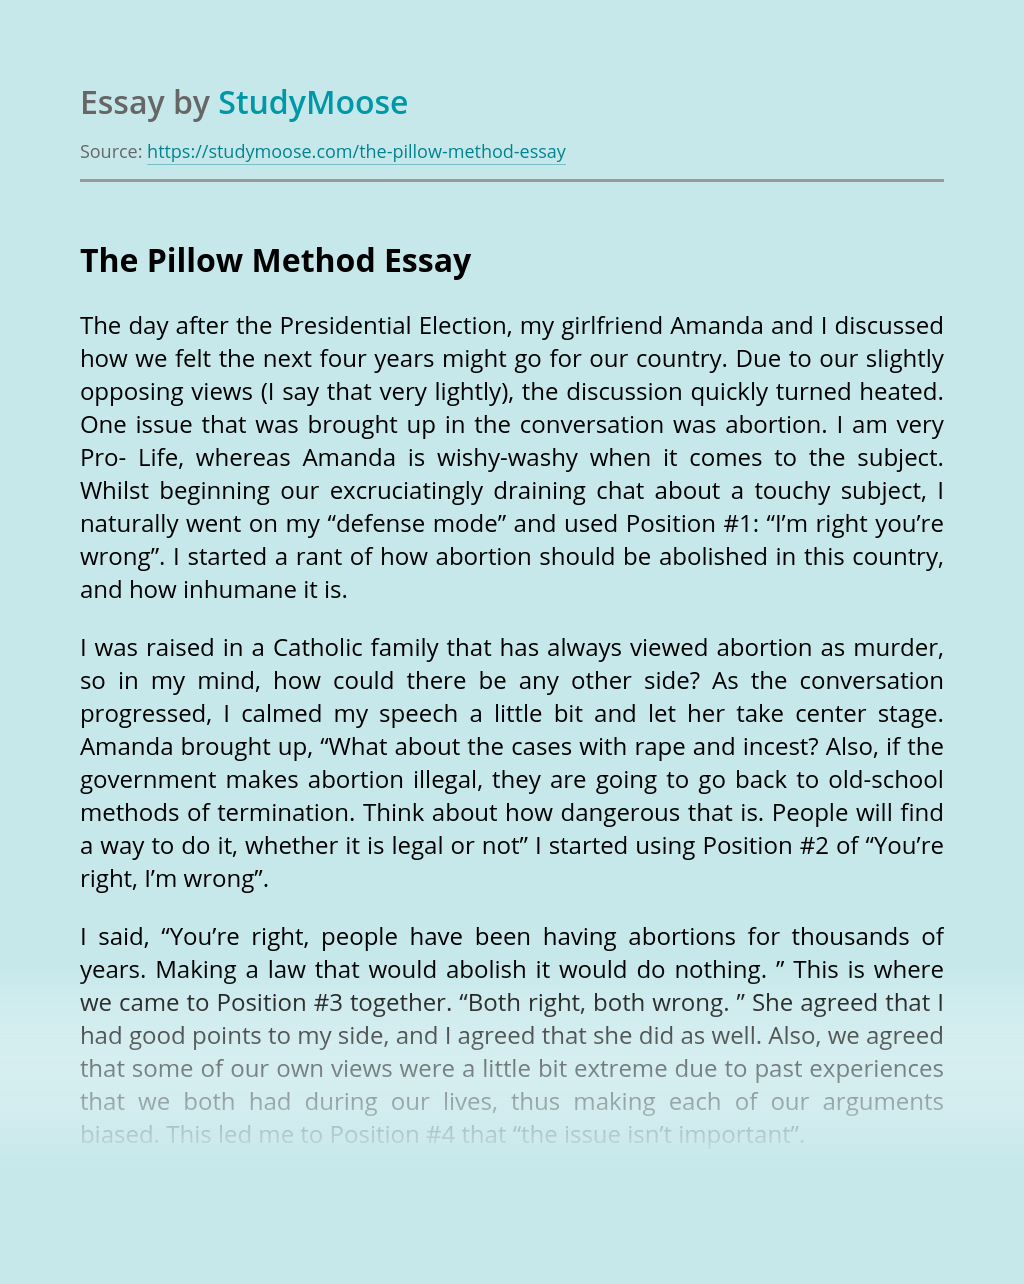 The Pillow Method